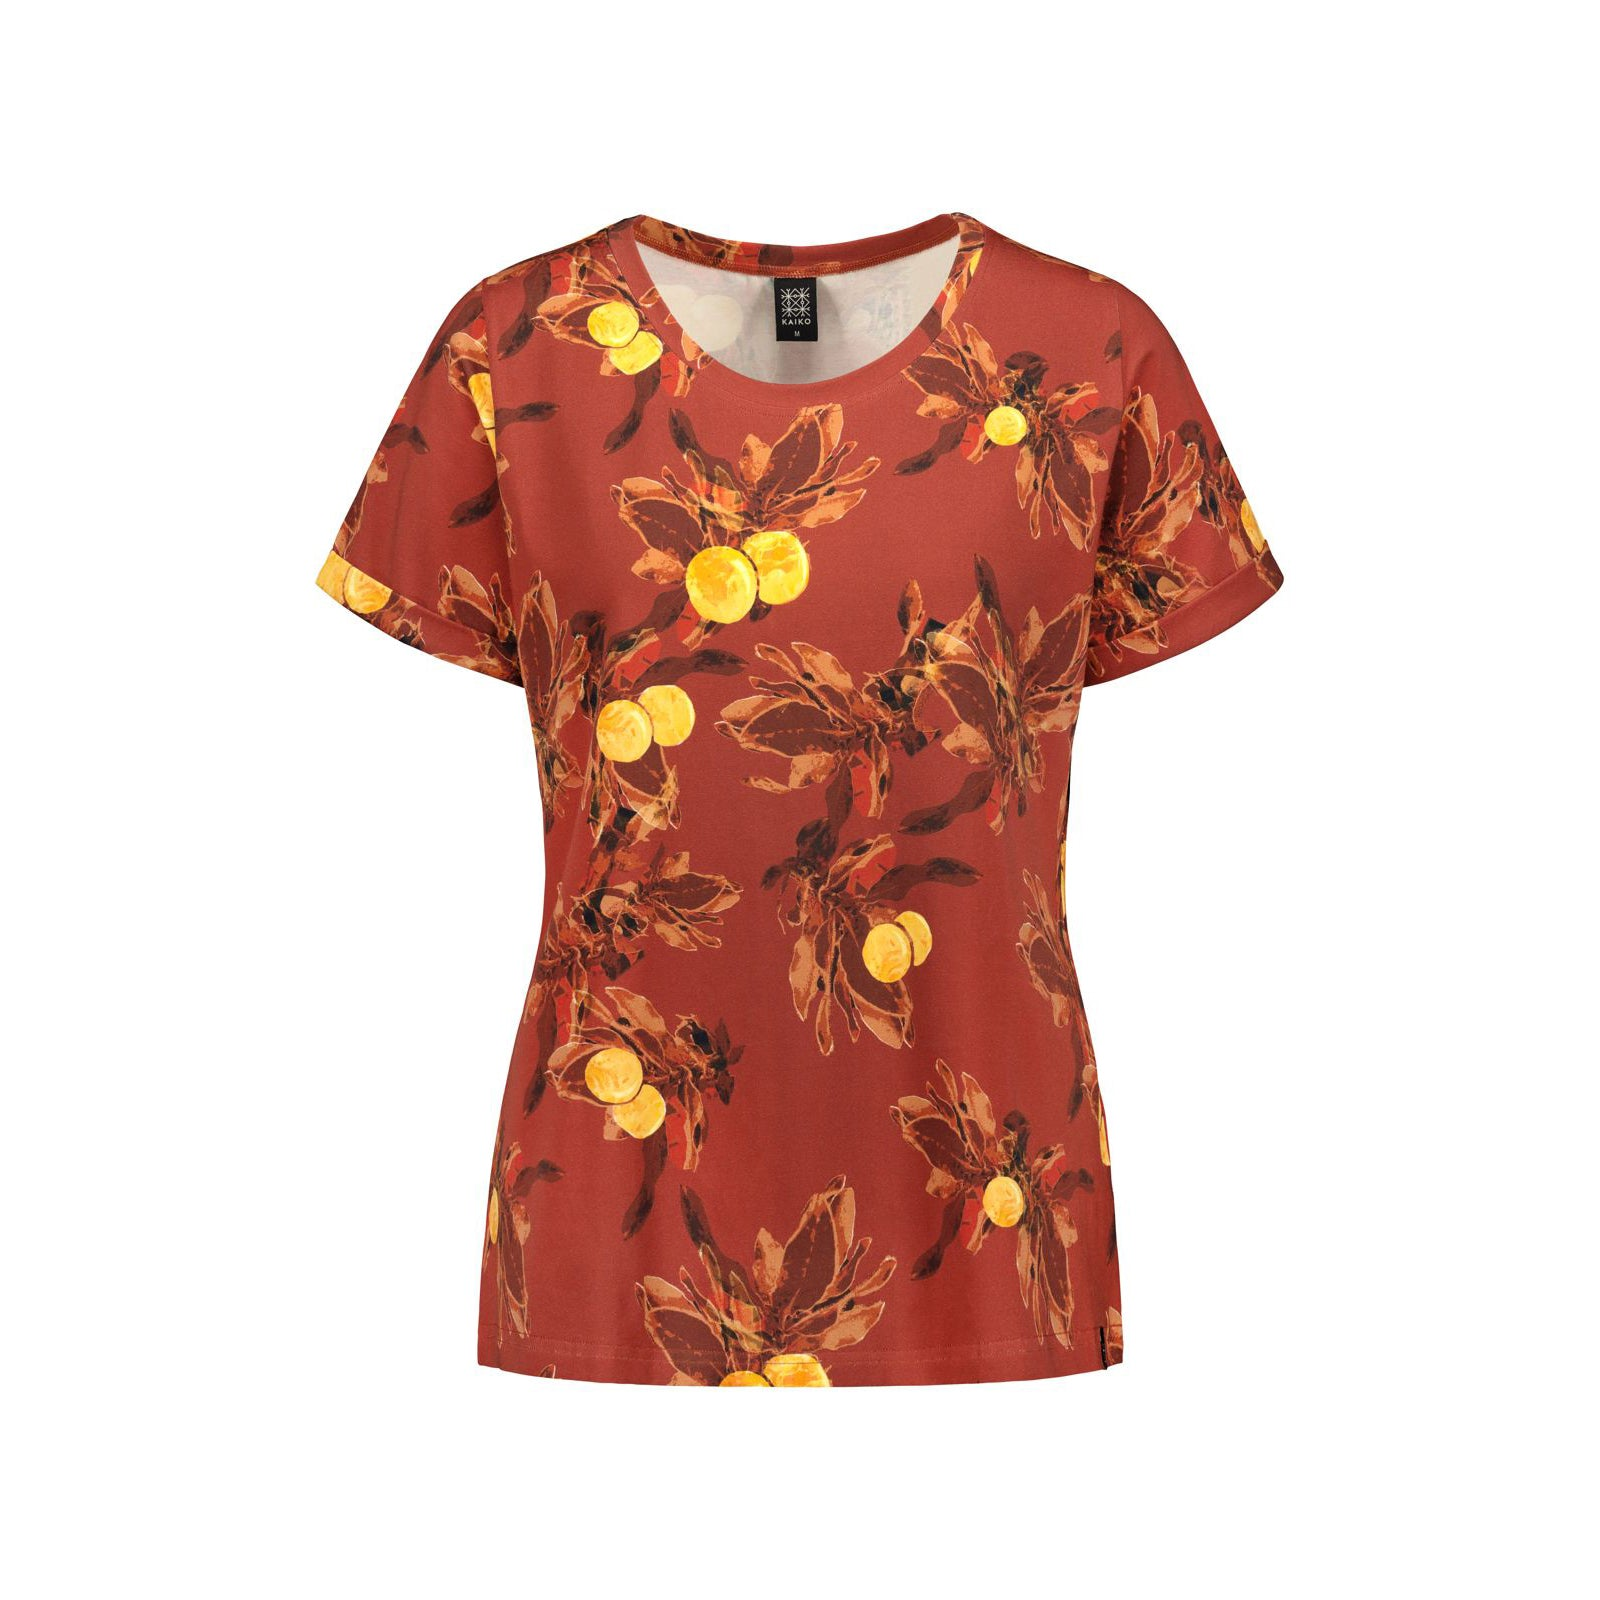 Kaiko naisten everyday tee, amber orange